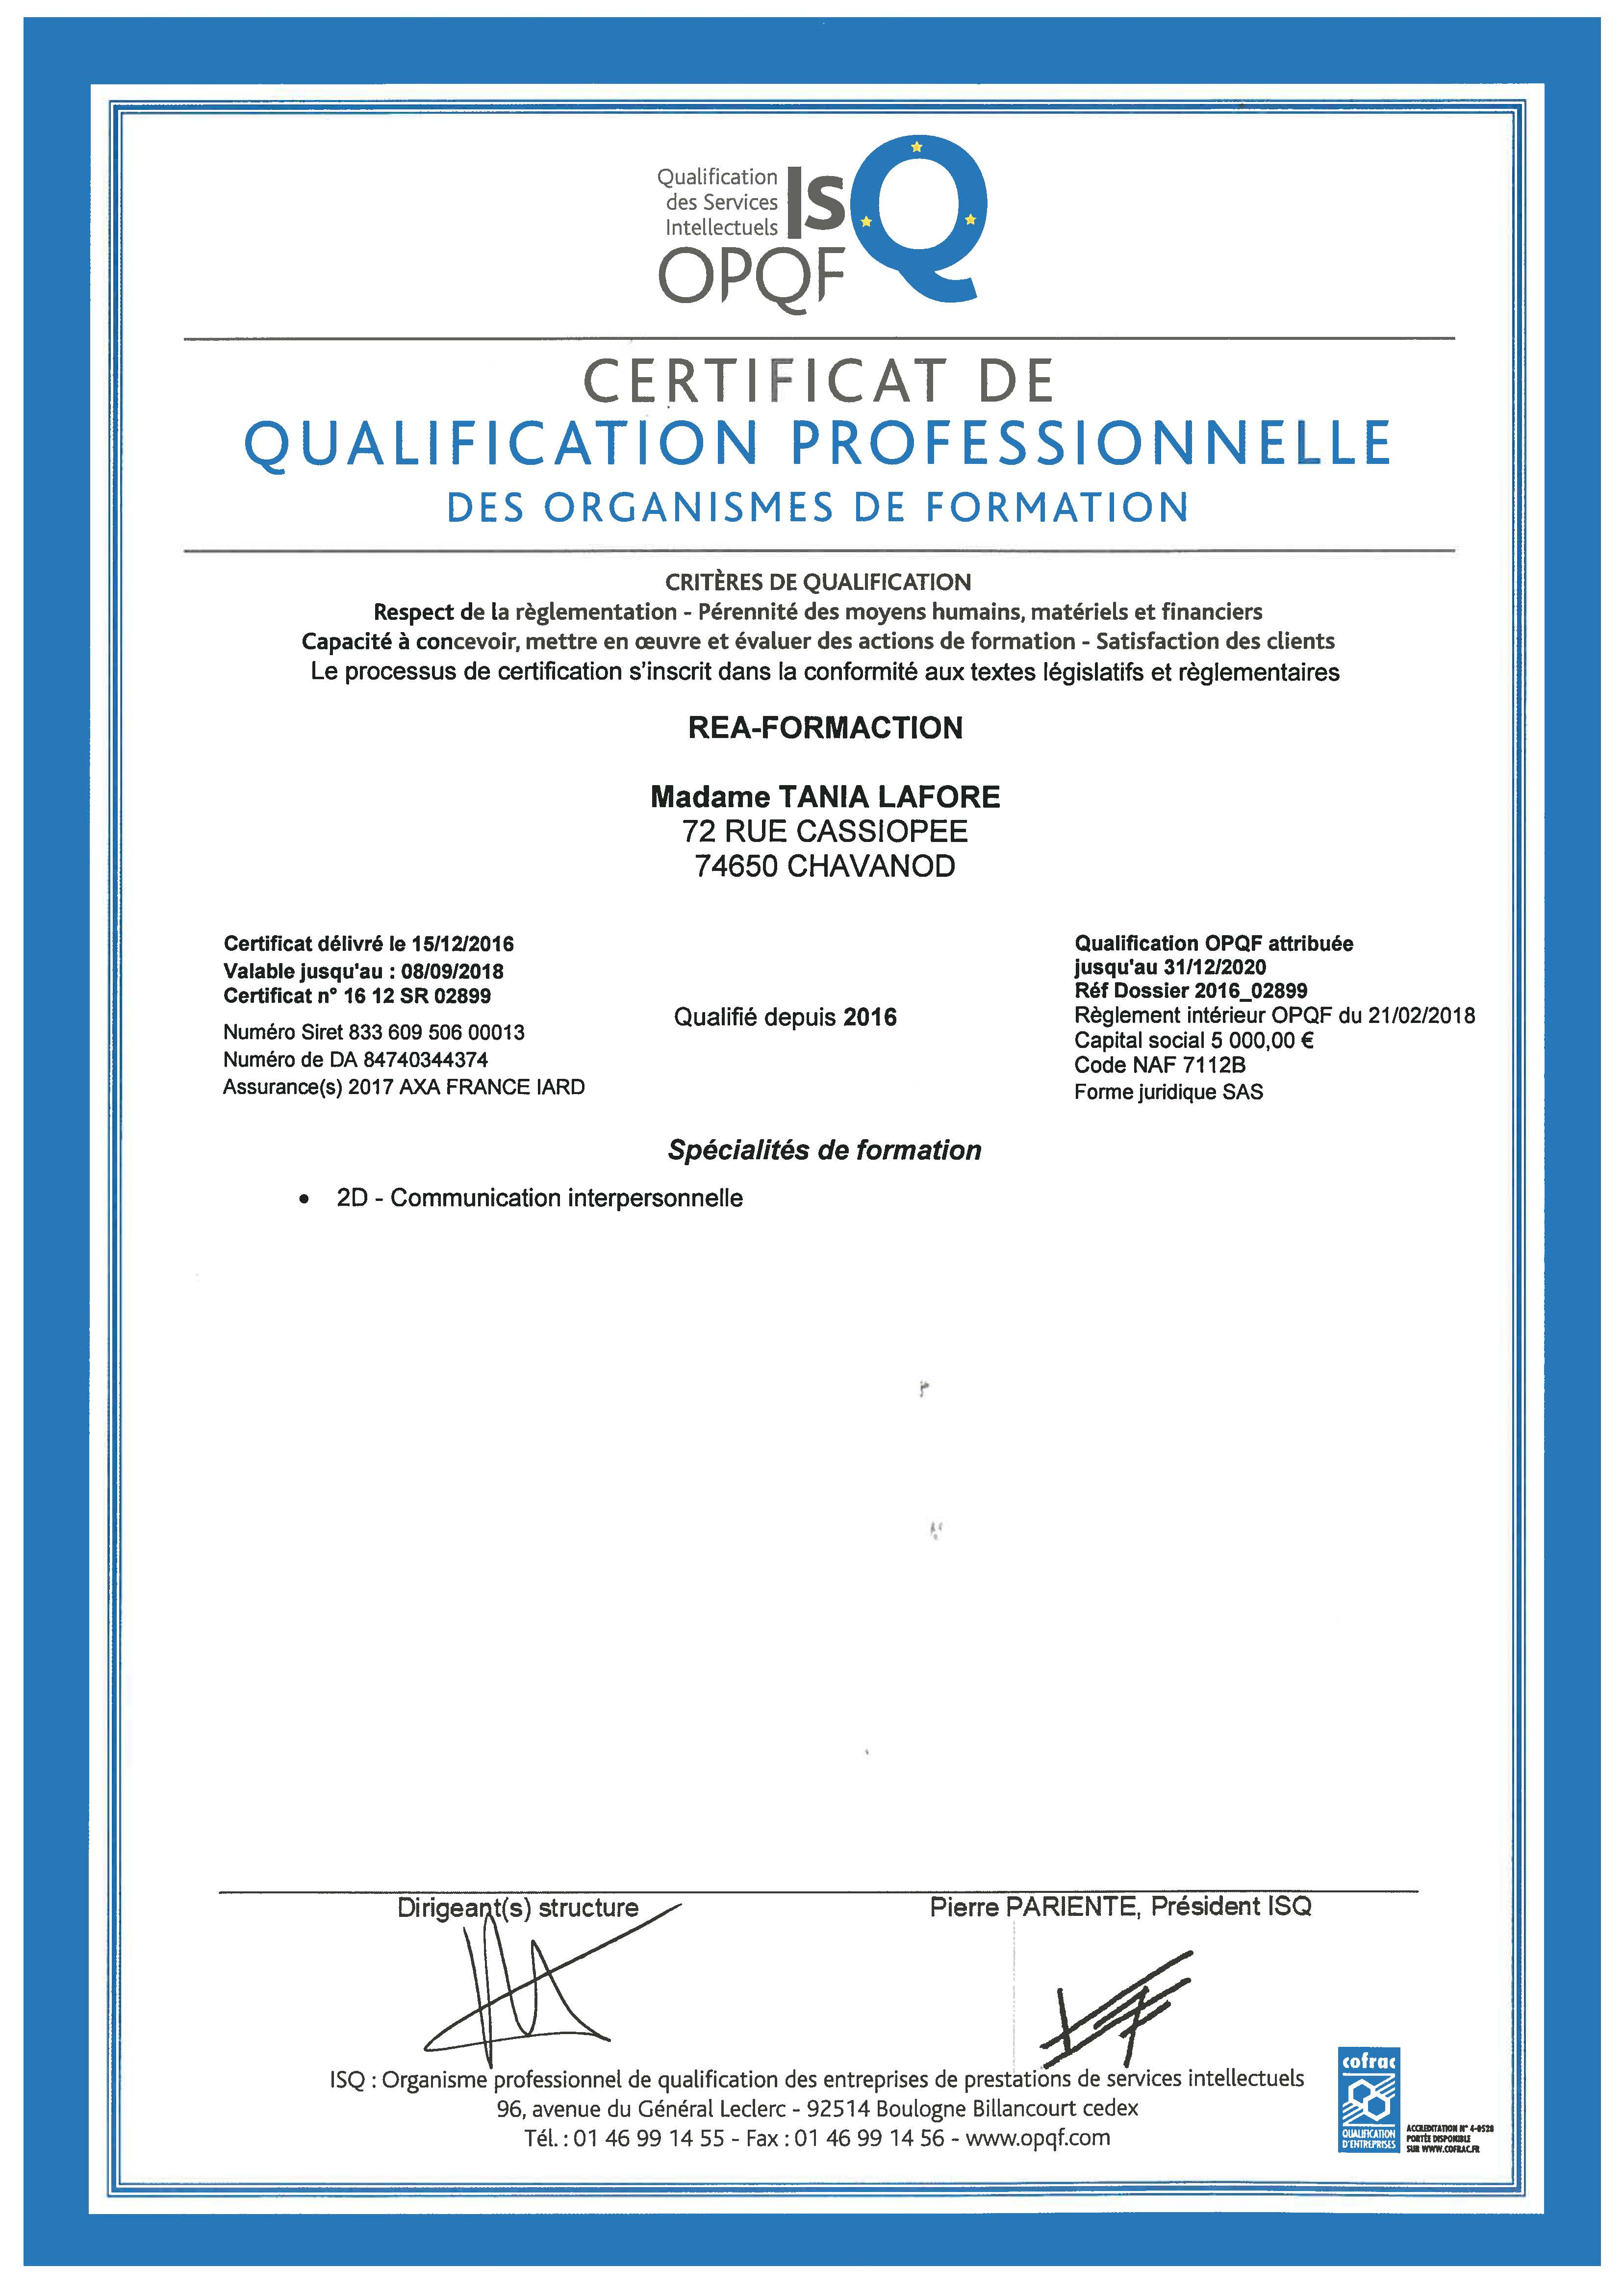 Qualification OPQF | Réa-FormAction